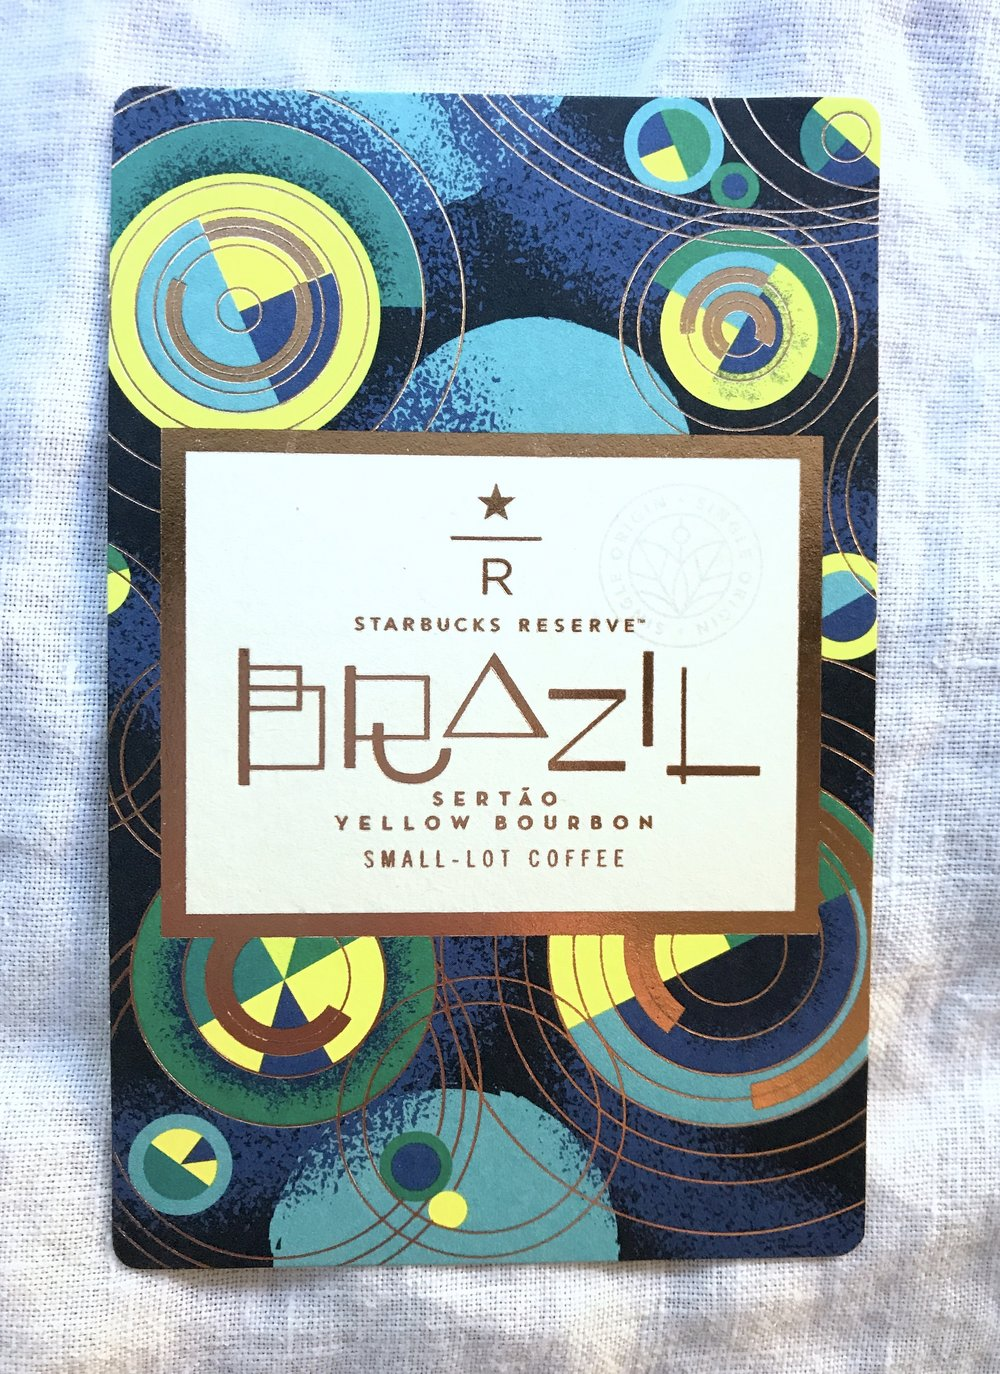 Starbucks Reserve - Brazil Sertao Yellow Bourbon - The inspiration behind Brazil Sertao Yellow Bourbon comes from the region and its rich agriculture. The Carmo de Minas region is known for its coffee production but especially its Yellow Bourbon variety. The design of the circles represent the birds-eye-view of this diverse agricultural landscape. Plots of land are often farmed in a circular irrigation pattern. The circles are also a representation of family. The Serato Estate, in which this variety comes from, is a large family firm with more than 100 years history in the production and commercialization of high-quality coffee.